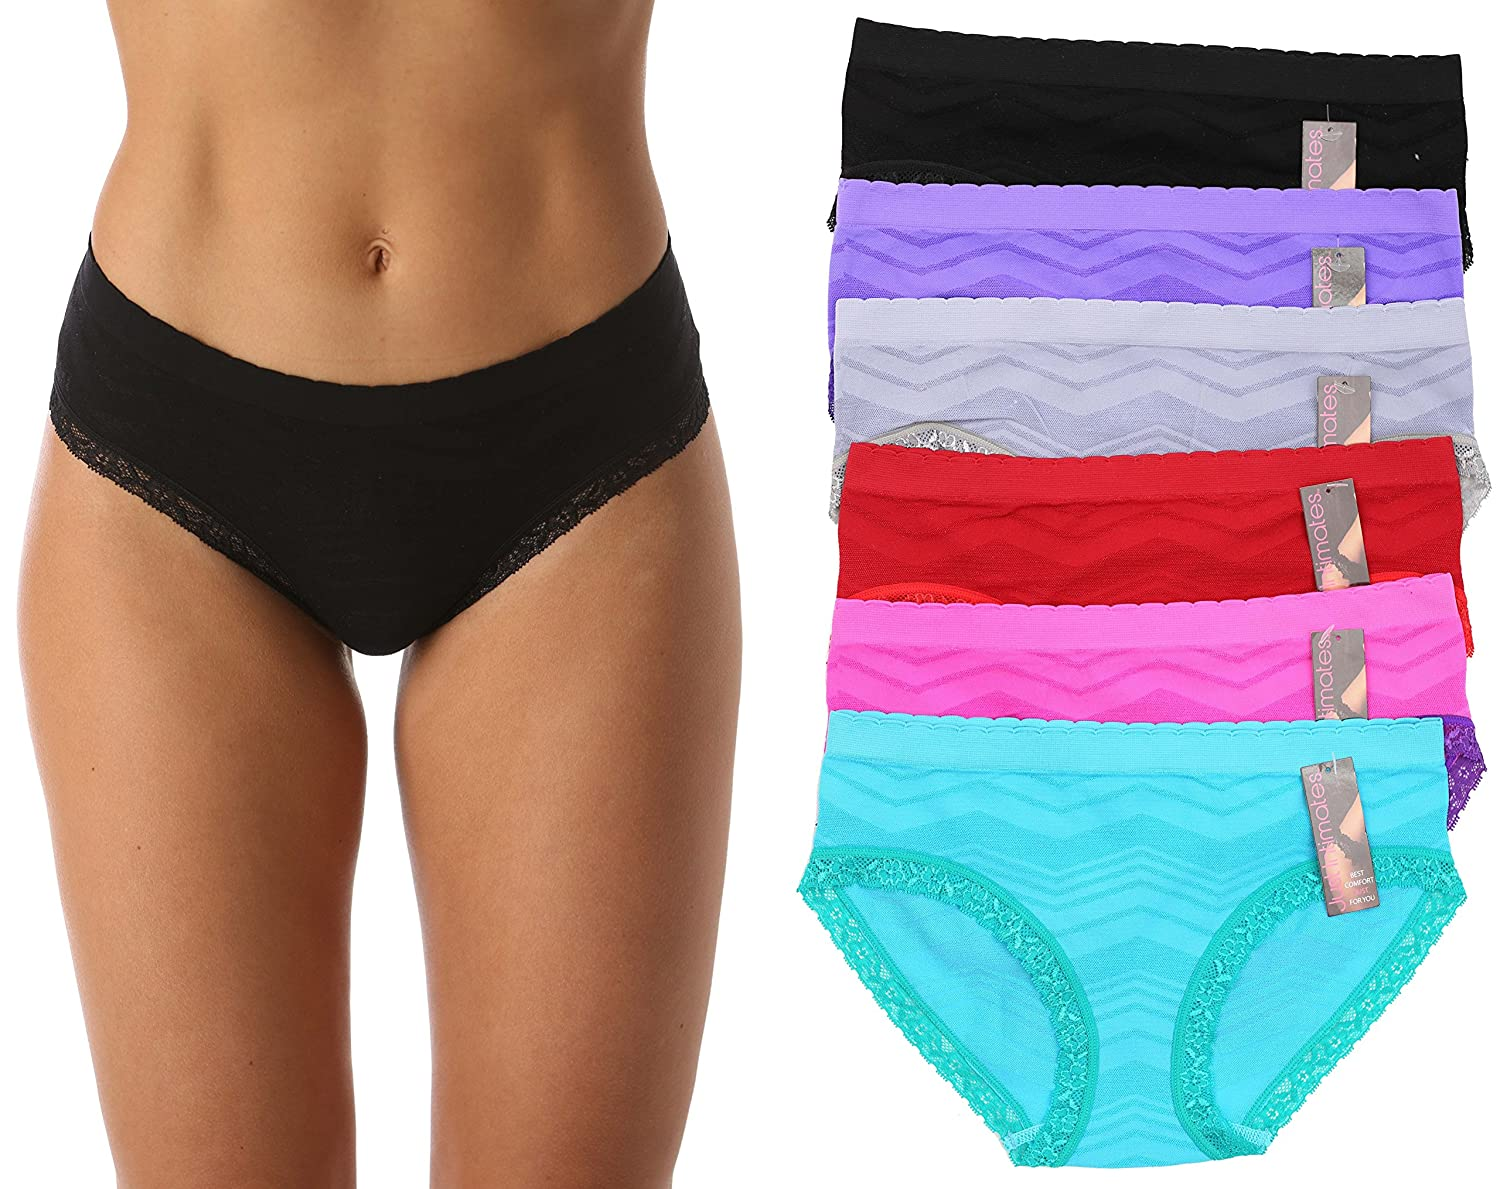 c4d9ec1ac464 Just Intimates Seamless Bikini Panties with Jacquard Fabric & Lace Detail  (6 Pack) at Amazon Women's Clothing store: